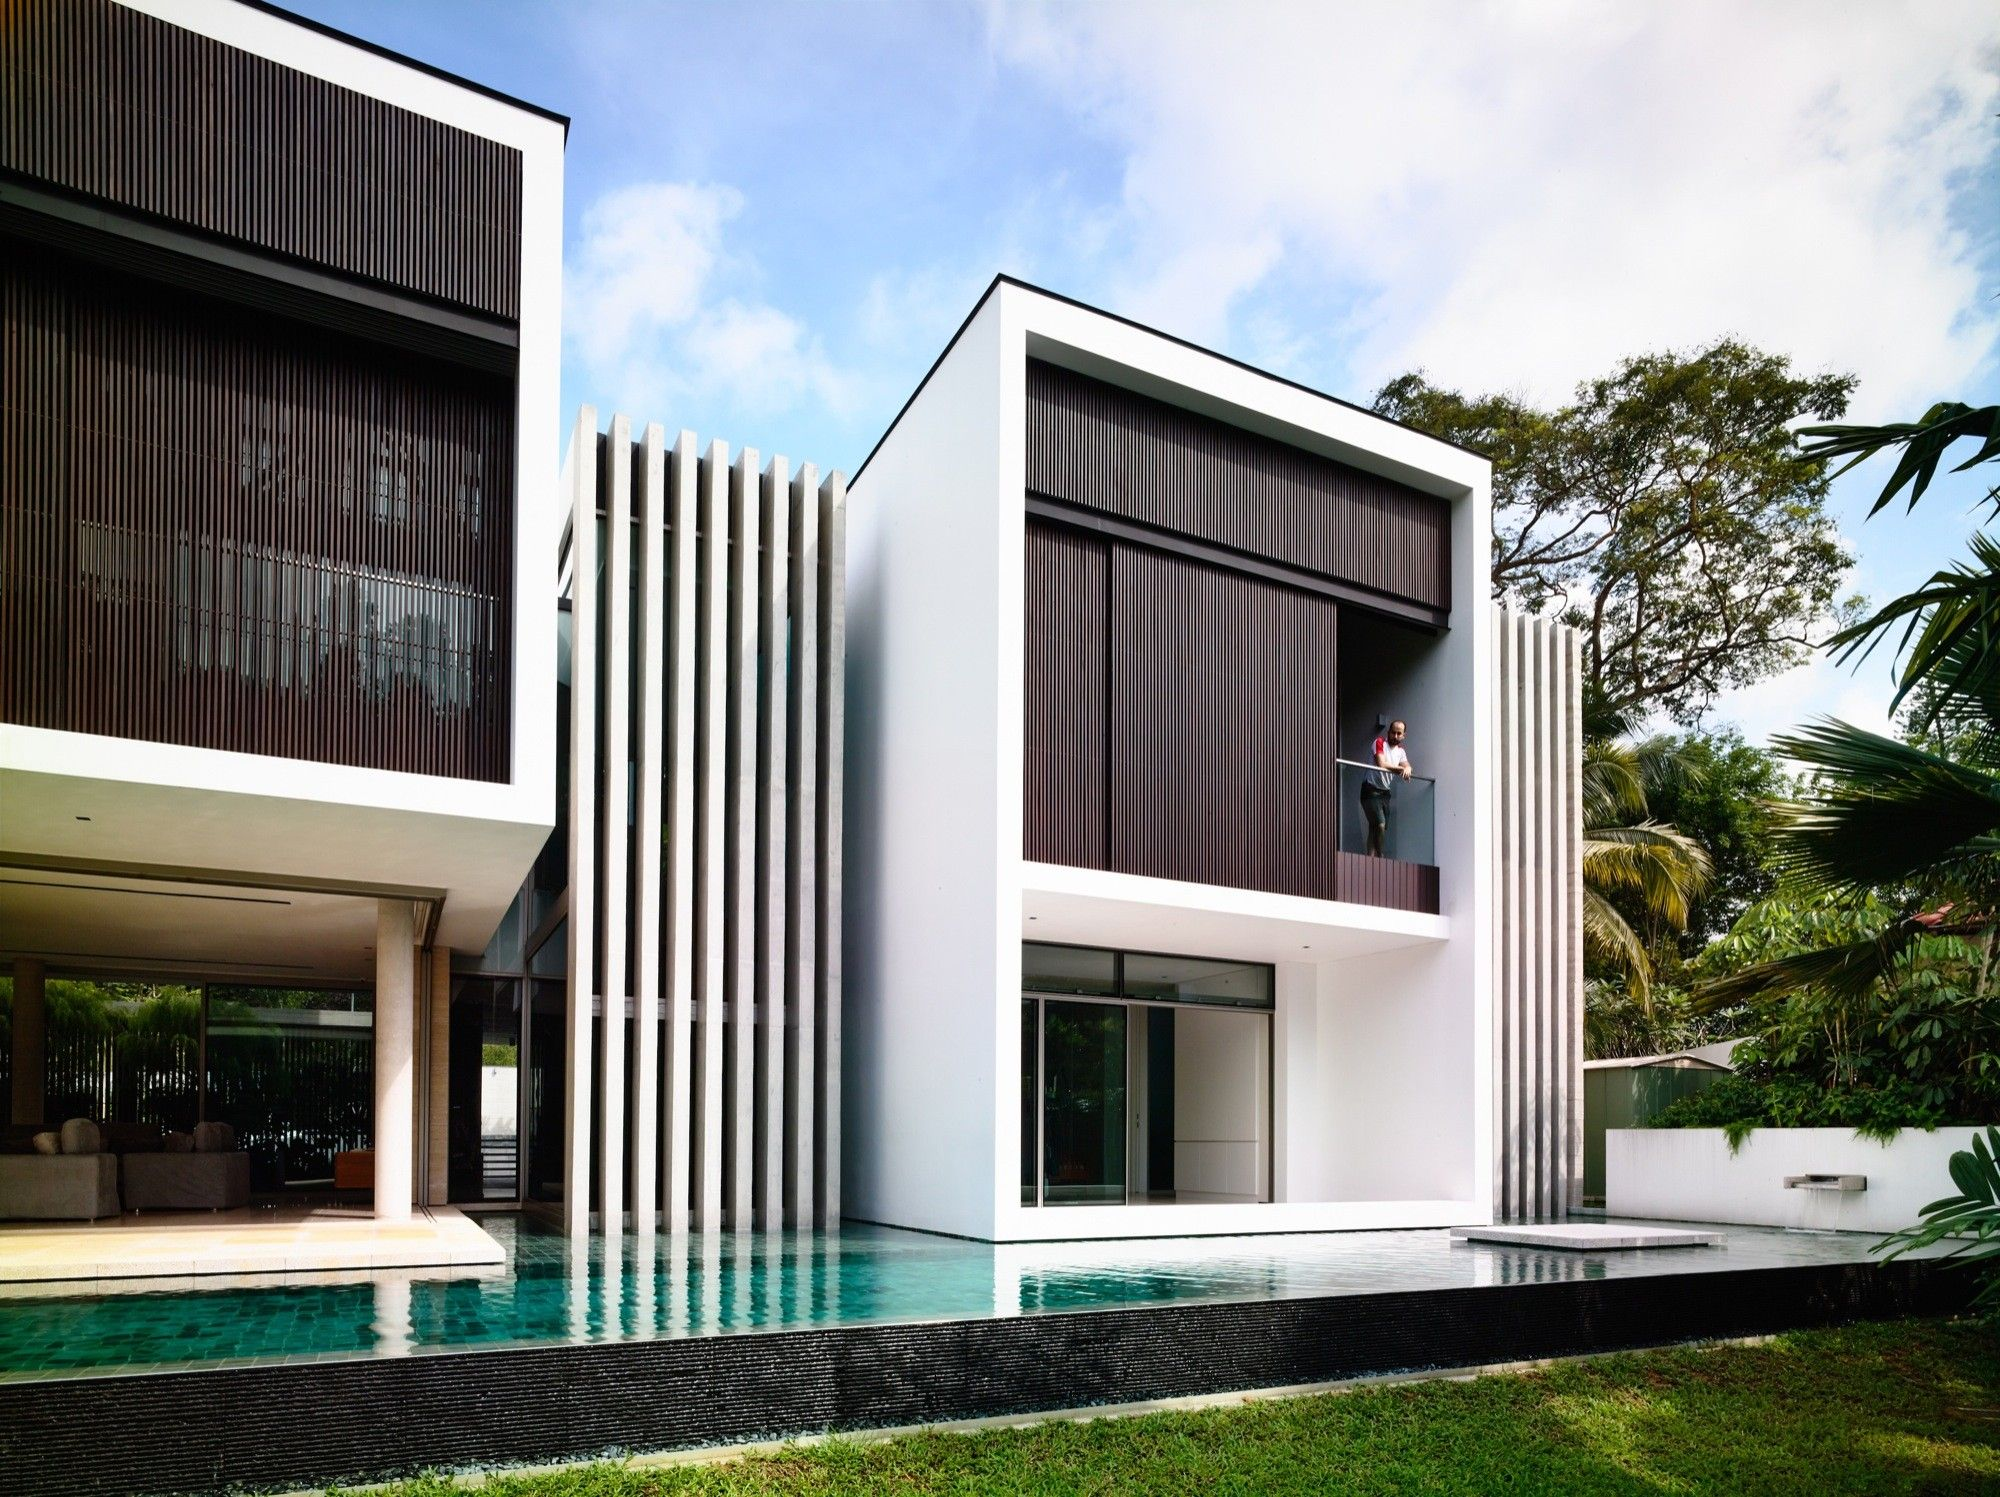 59btp house ong ong pte ltd house architecture and for Home designs ltd